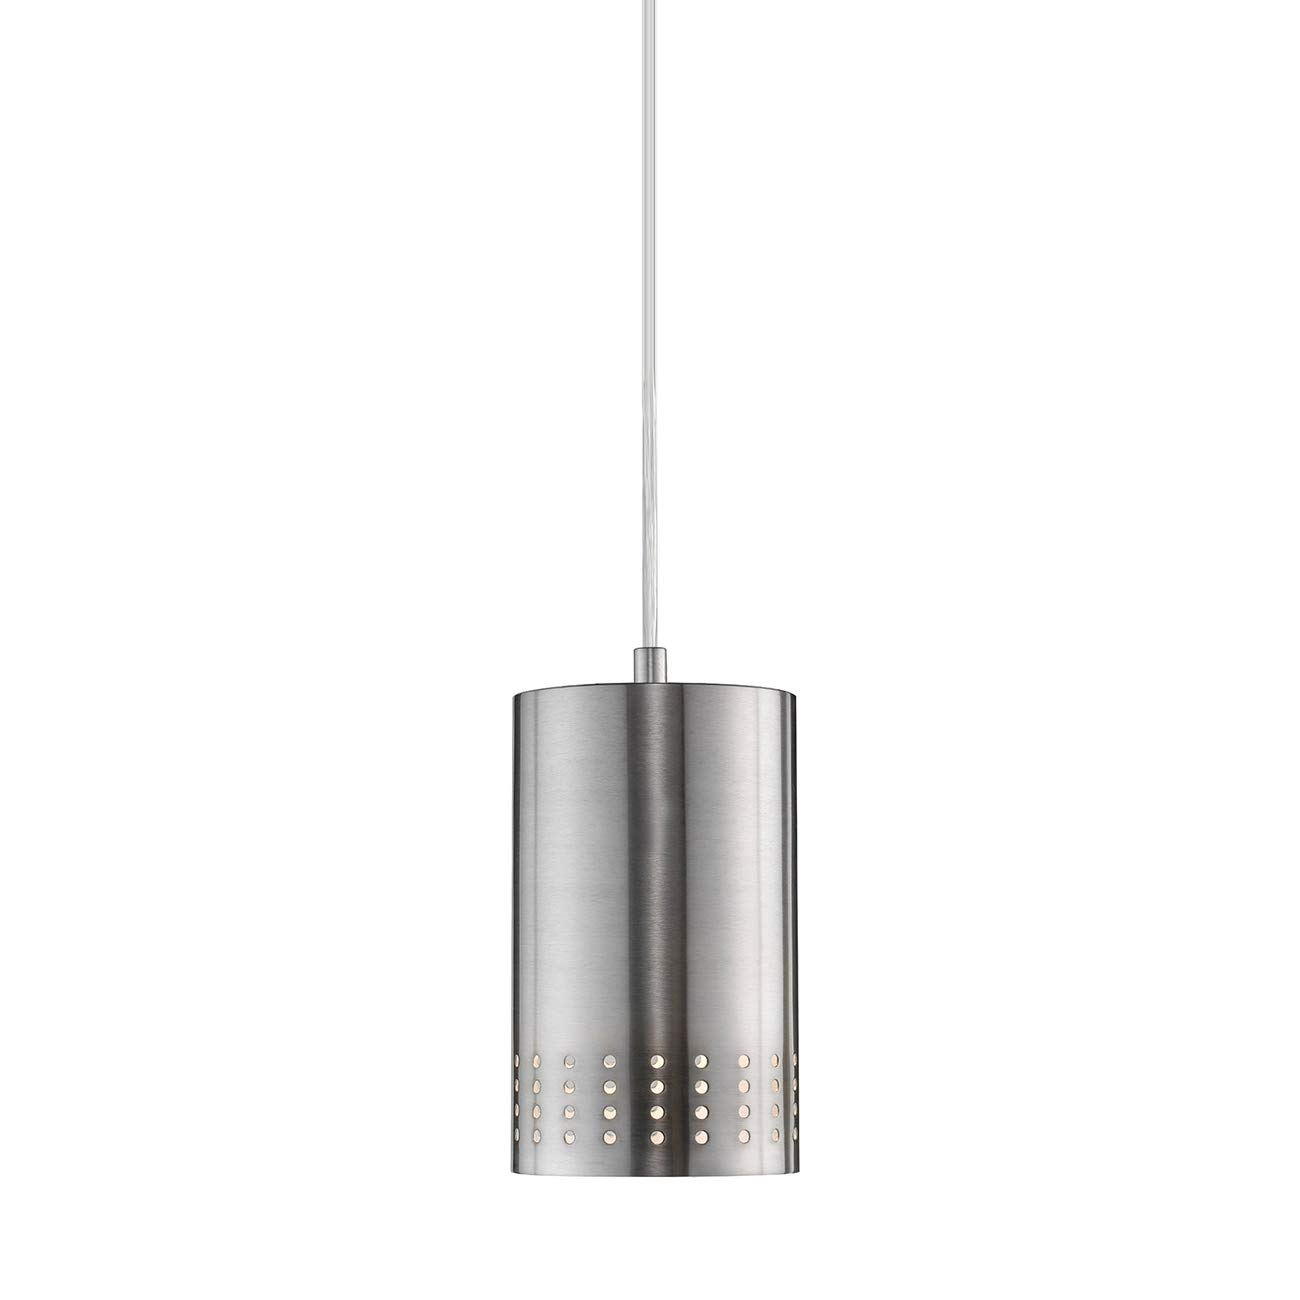 LANROS Adjustable Mini Pendant Light, Modern Hanging Lights with Perforated Cylindrical Metal Shade for Kitchen Island, Living Room, Brushed Nickel Finish, 1-Pack